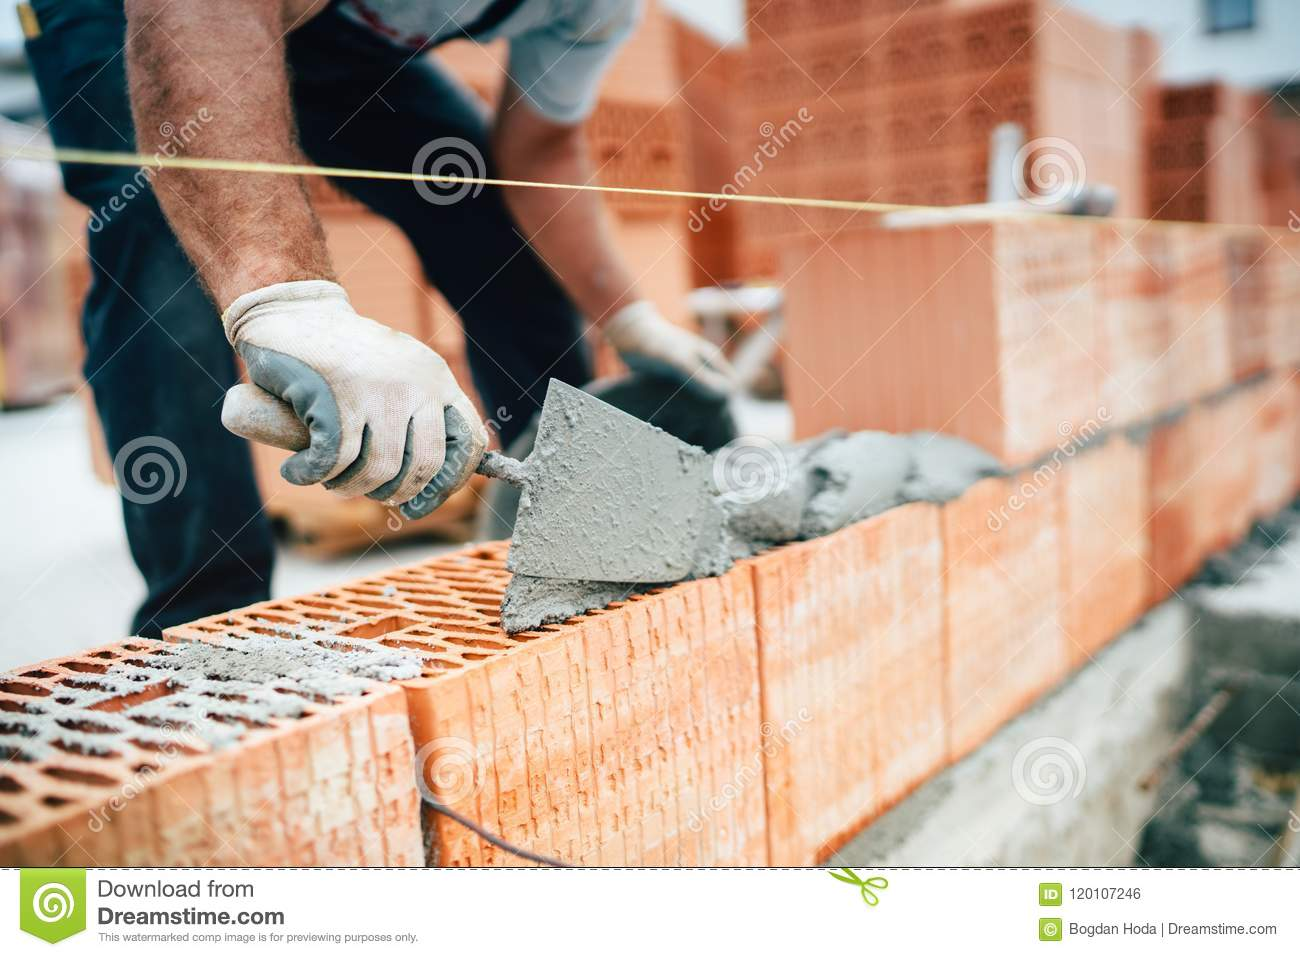 worker using pan knife for building brick walls with cement and mortar